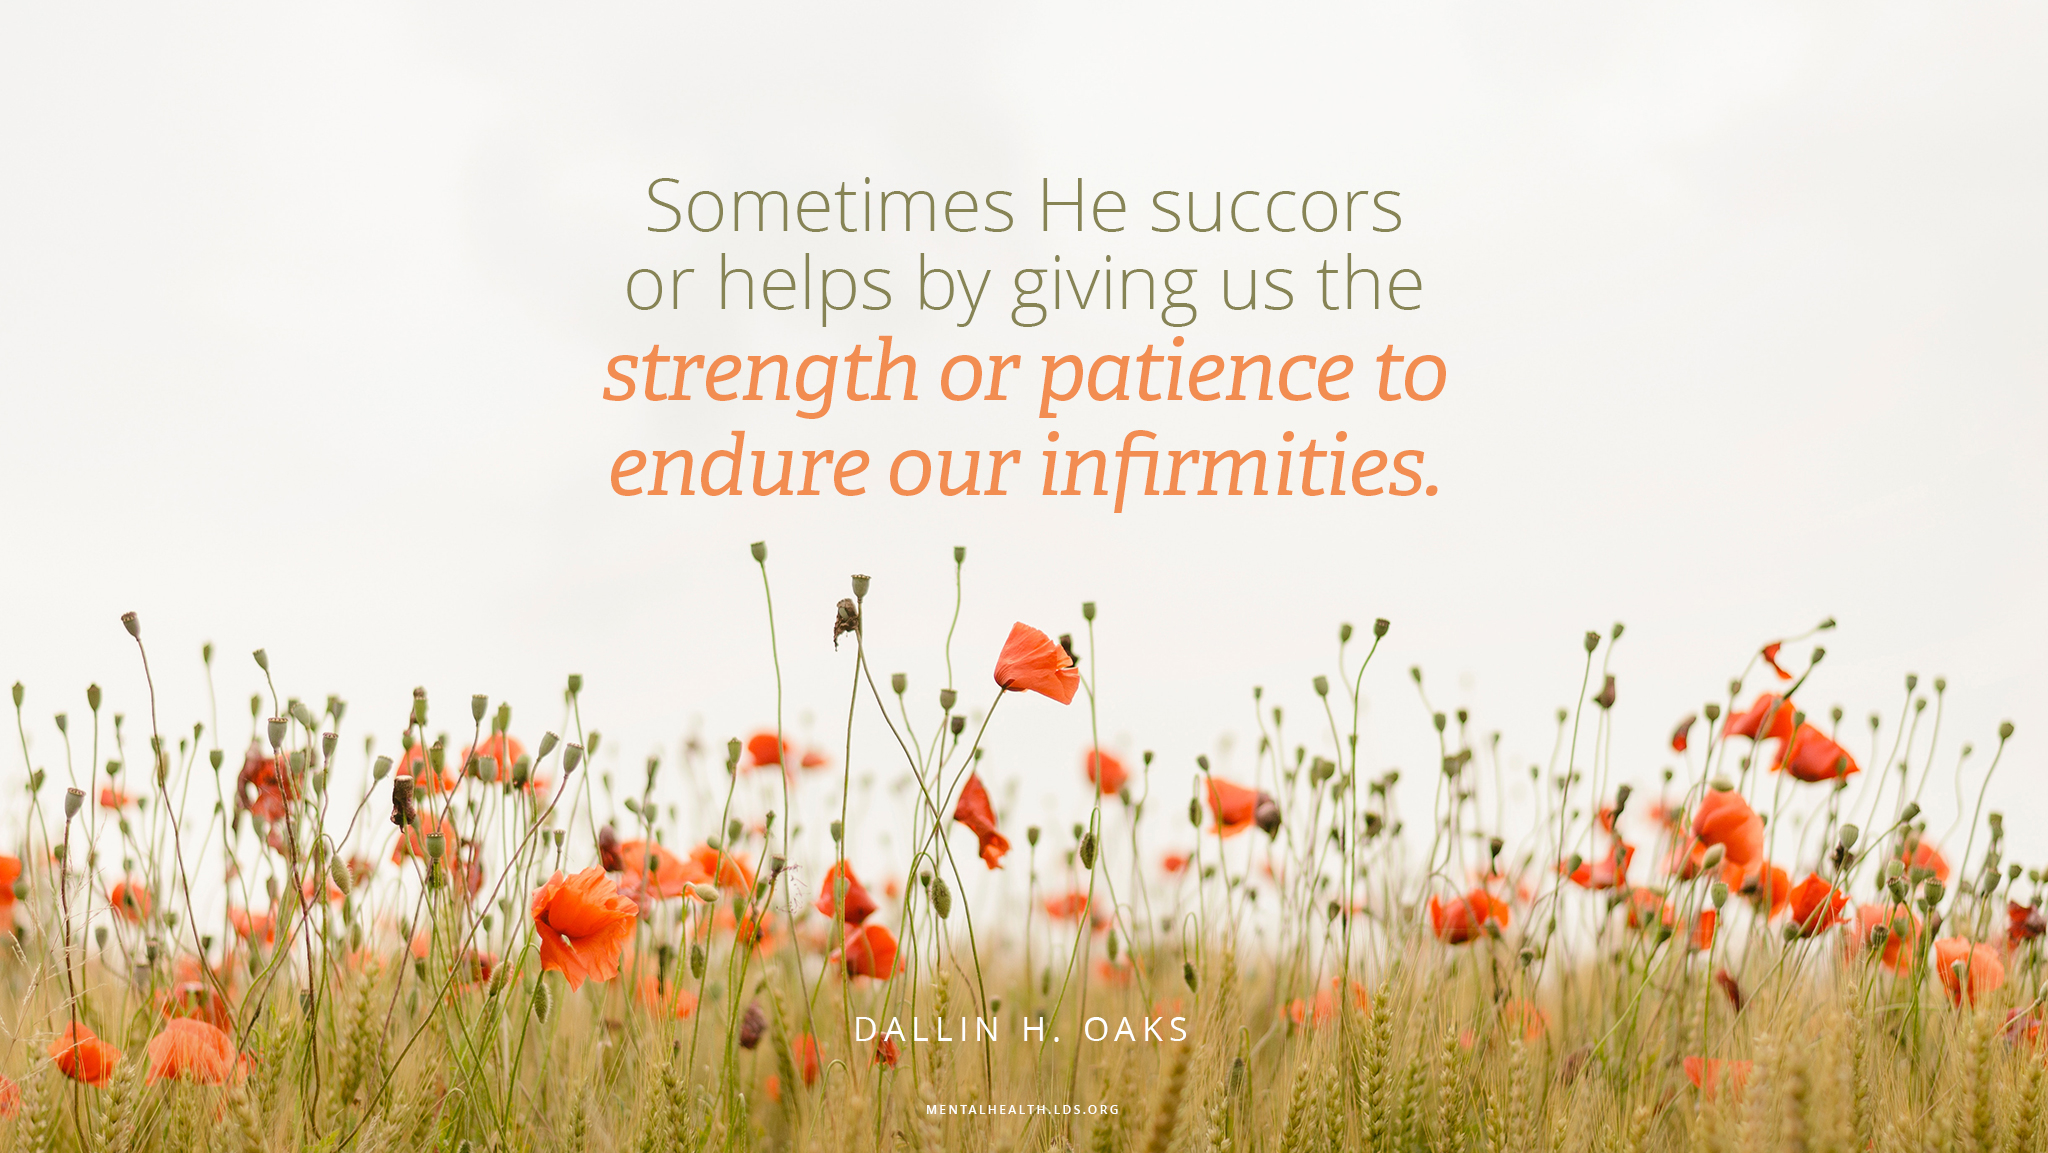 """""""Sometimes His power heals an infirmity, but the scriptures and our experiences teach that sometimes He succors or helps by giving us the strength or patience to endure our infirmities.""""—Elder Dallin H. Oaks, """"Strengthened by the Atonement of Jesus Christ"""""""